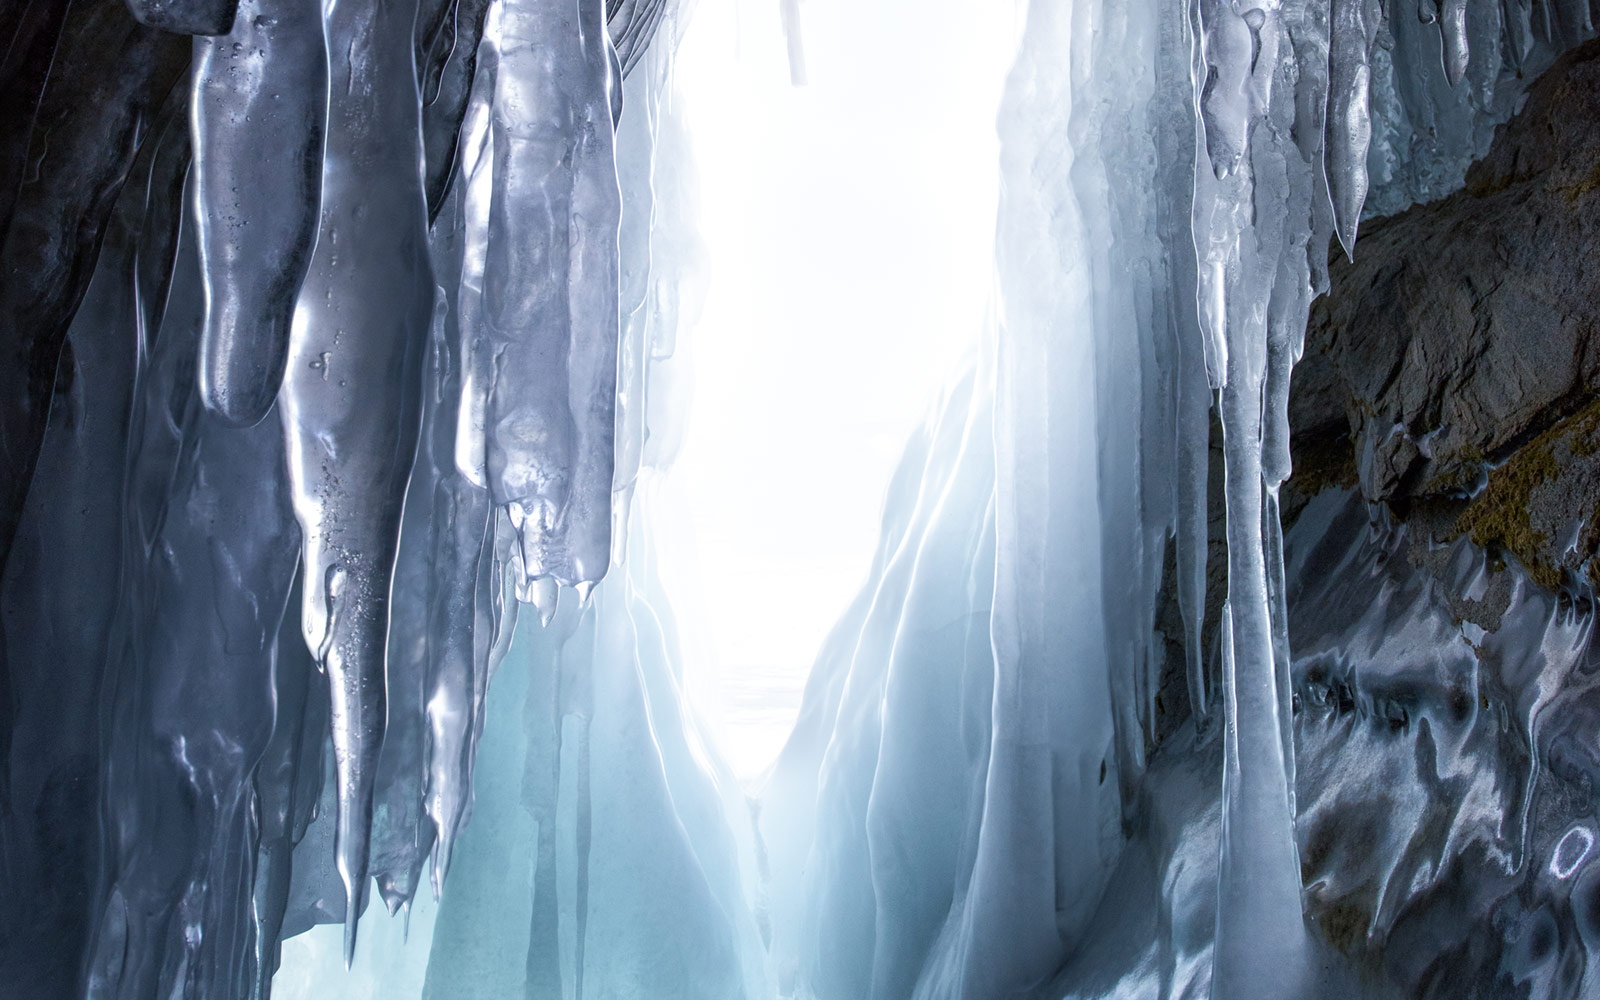 Icicles Hanging in Cave, Siberia, Russia